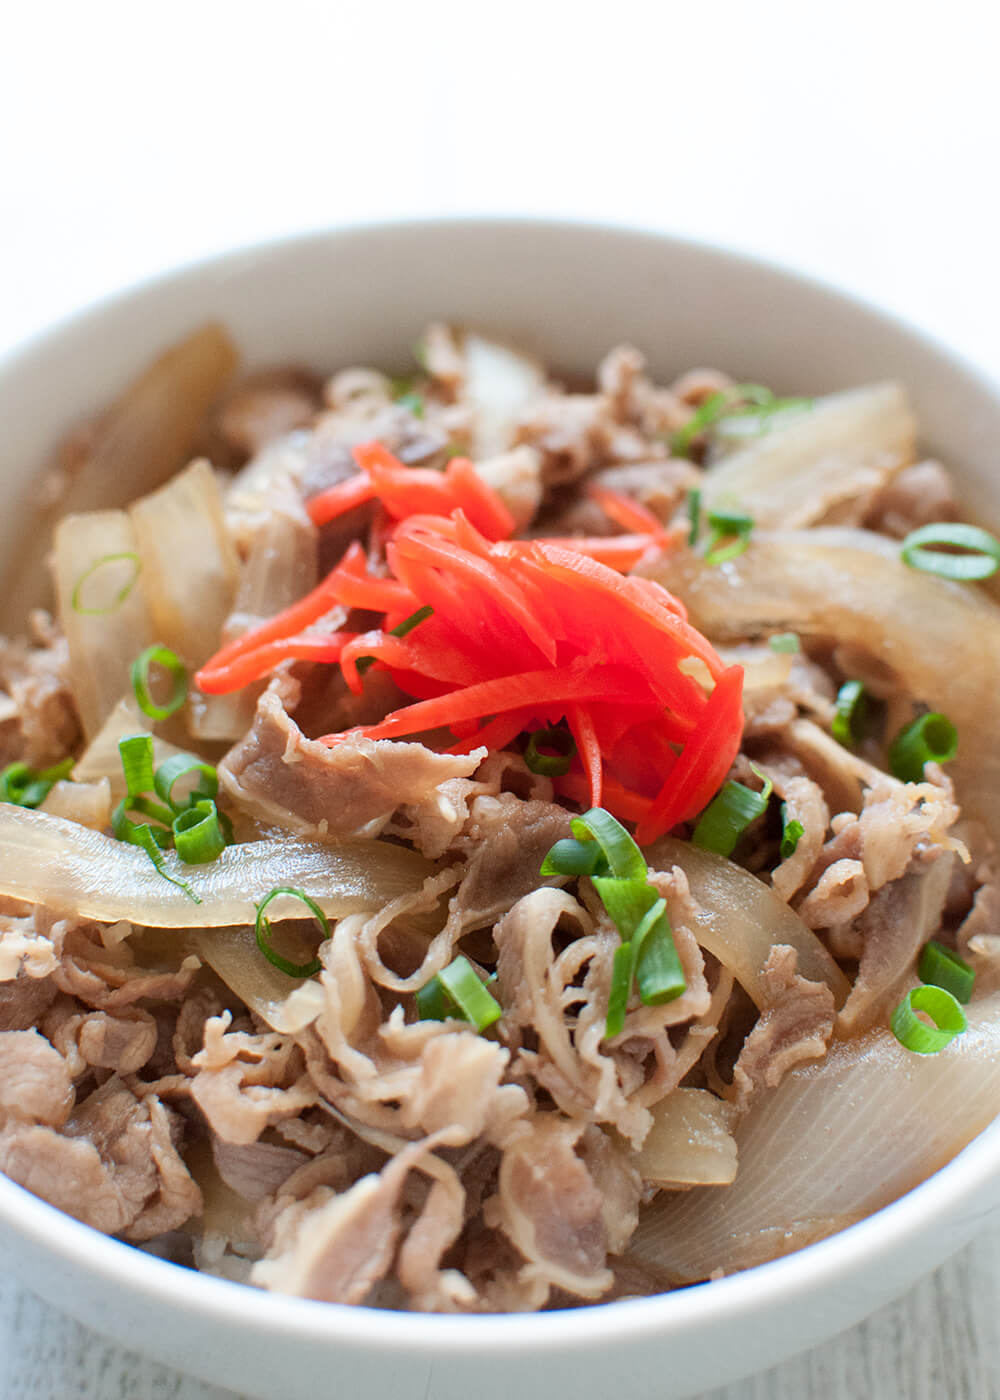 Japanese Beef bowl (Gyū-don) is a popular one-bowl dish that consists of a bowl of rice topped with thinly sliced beef and onions simmered in sweet soy-flavoured sauce. It is so quick to make, tasty and filling – a perfect mid-week family meal.